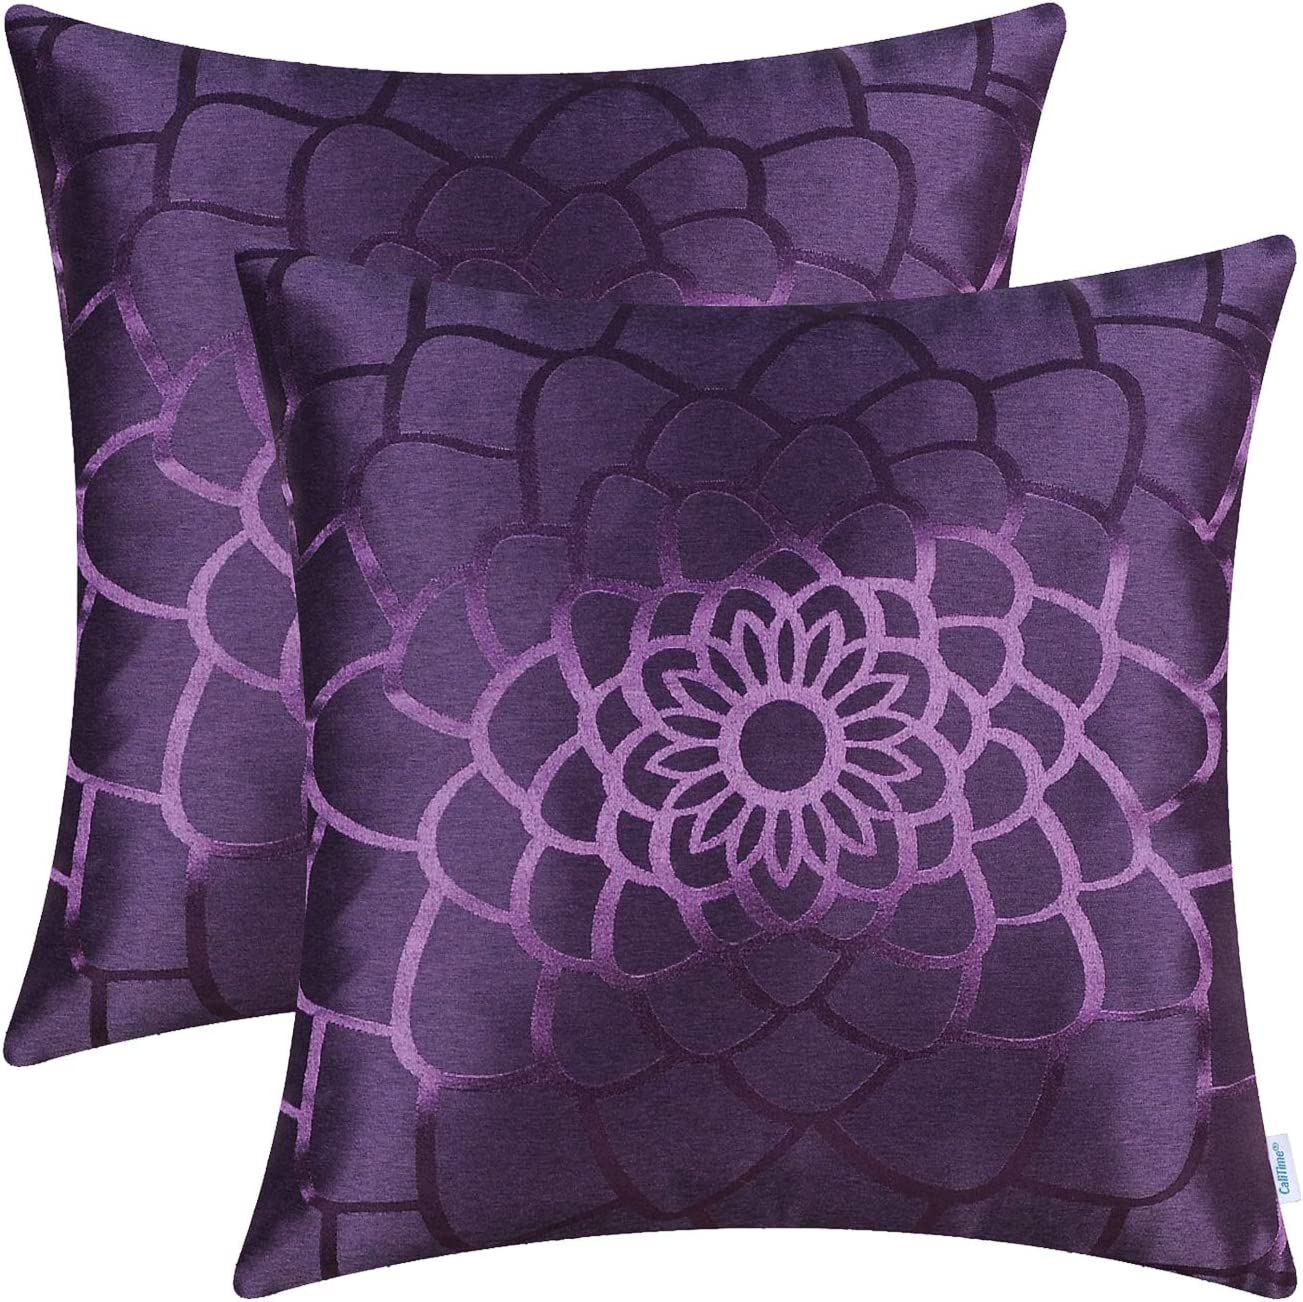 CaliTime Pack of 2 Throw Pillow Covers Cases for Couch Sofa Home Decor Modern Shining & Dull Contrast Dahlia Floral Silhouette Both Sides 18 X 18 Inches Deep Purple